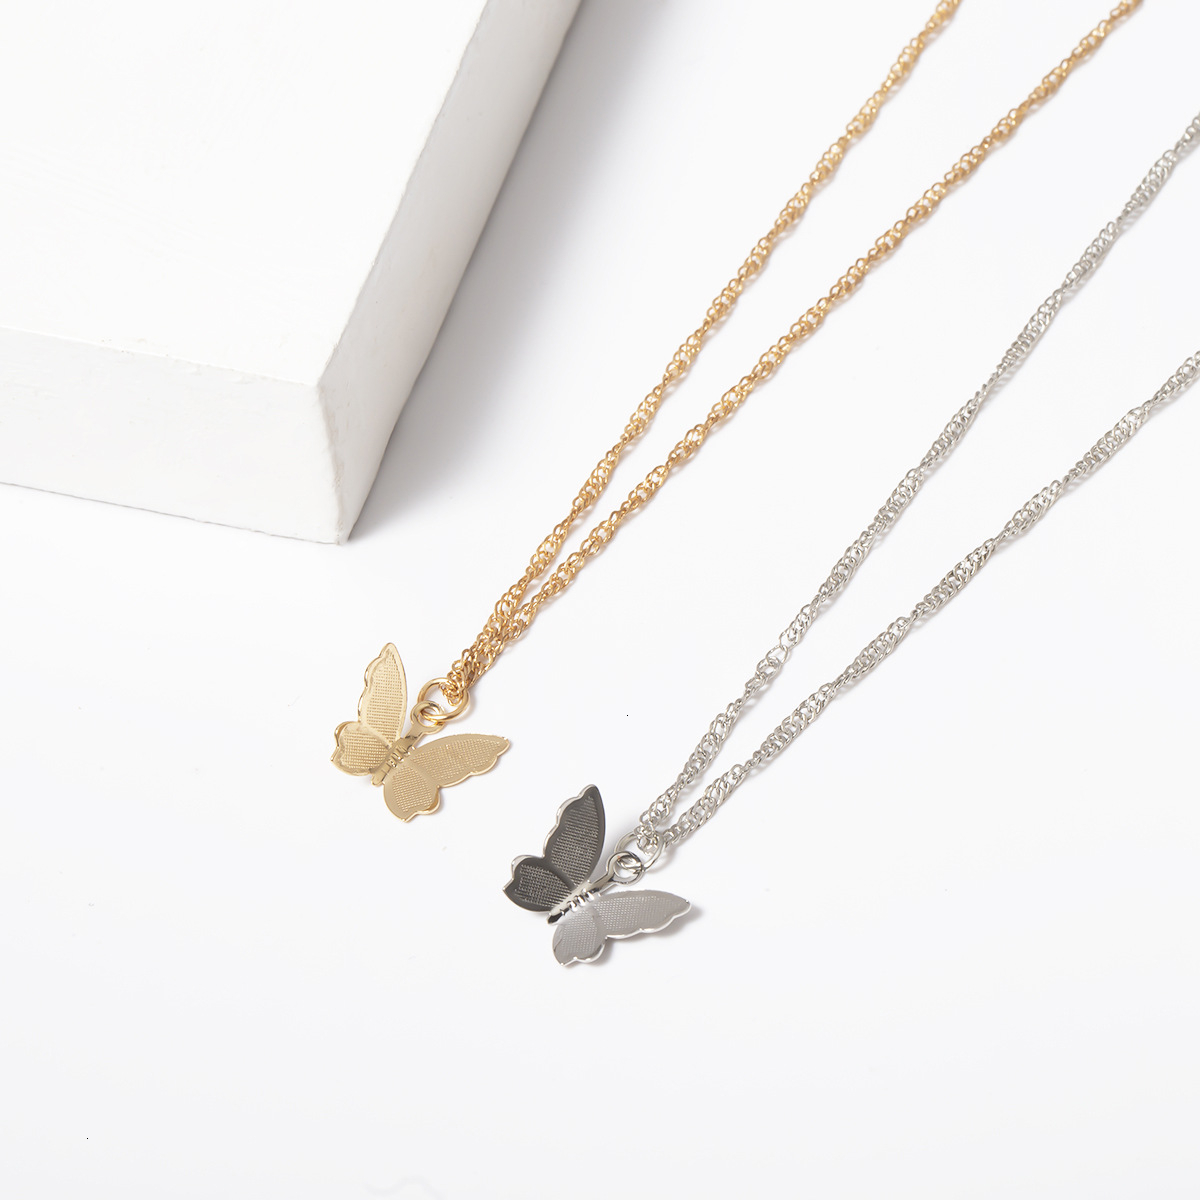 Top Selling Little Butterfly Pendant Necklace For Women Girl Gold Chain Collar Female Shining Accessories Party Jewelry Gift